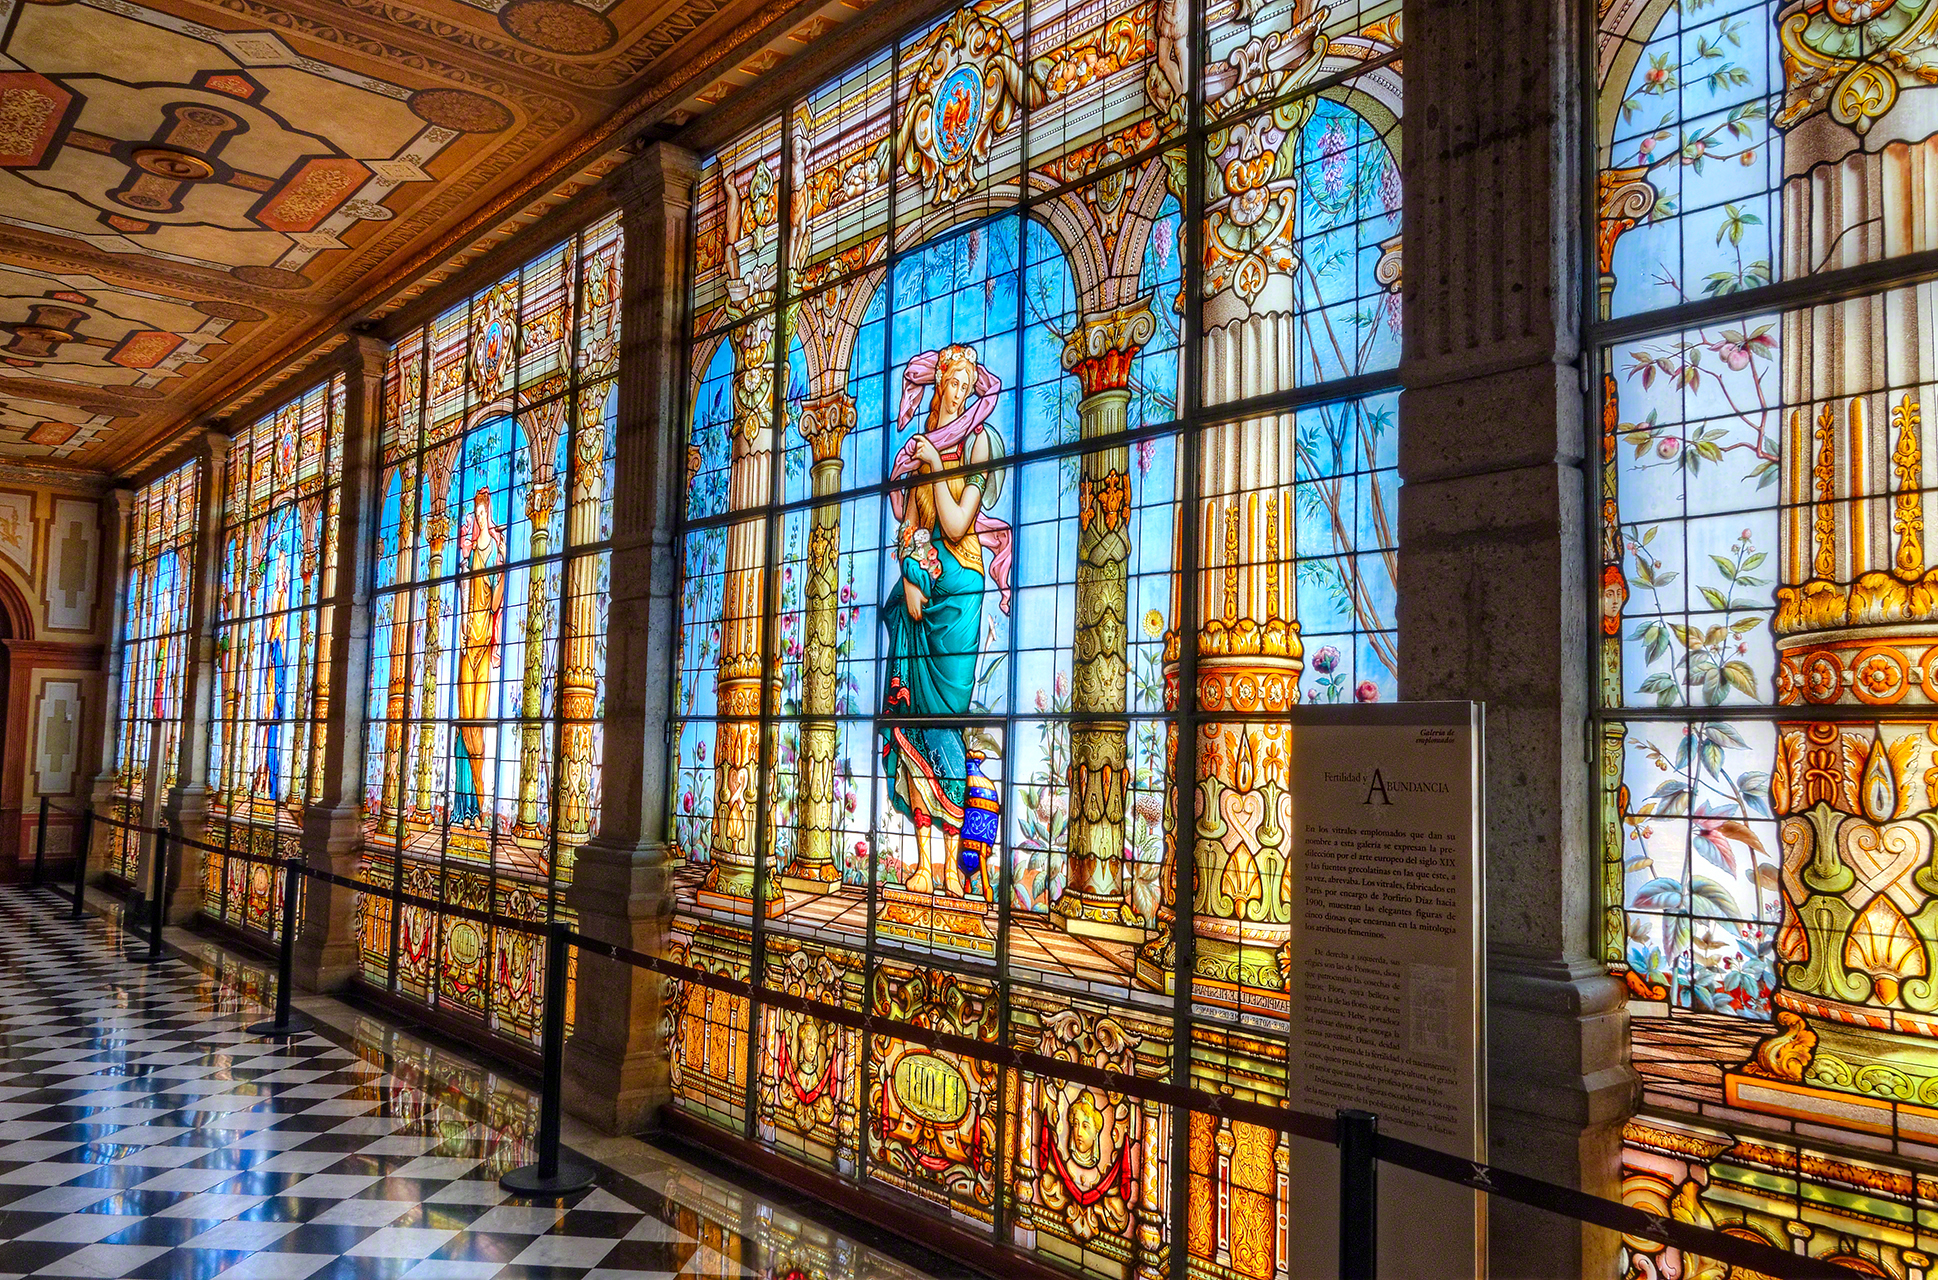 Large Stained Glass Wall, Mexico City